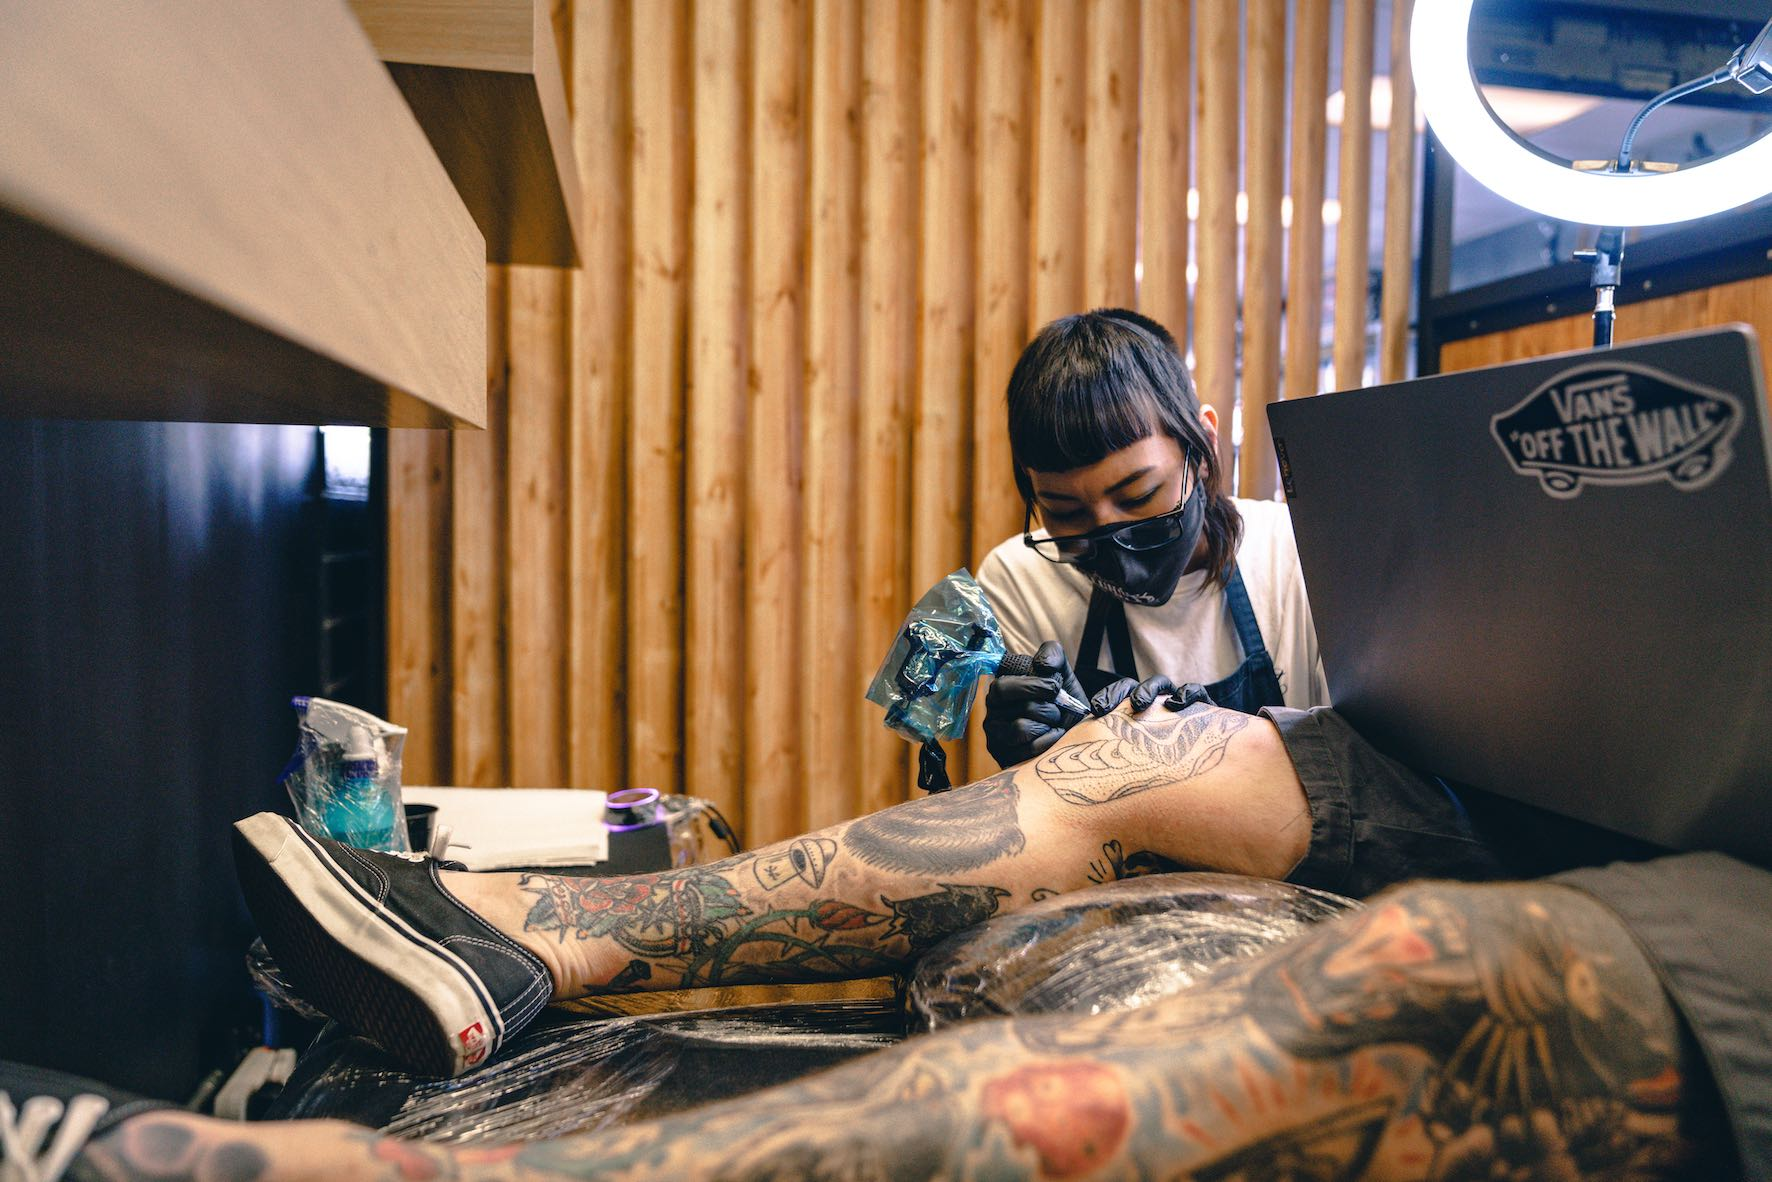 Interview with Tattoo Artist, Romi Ding